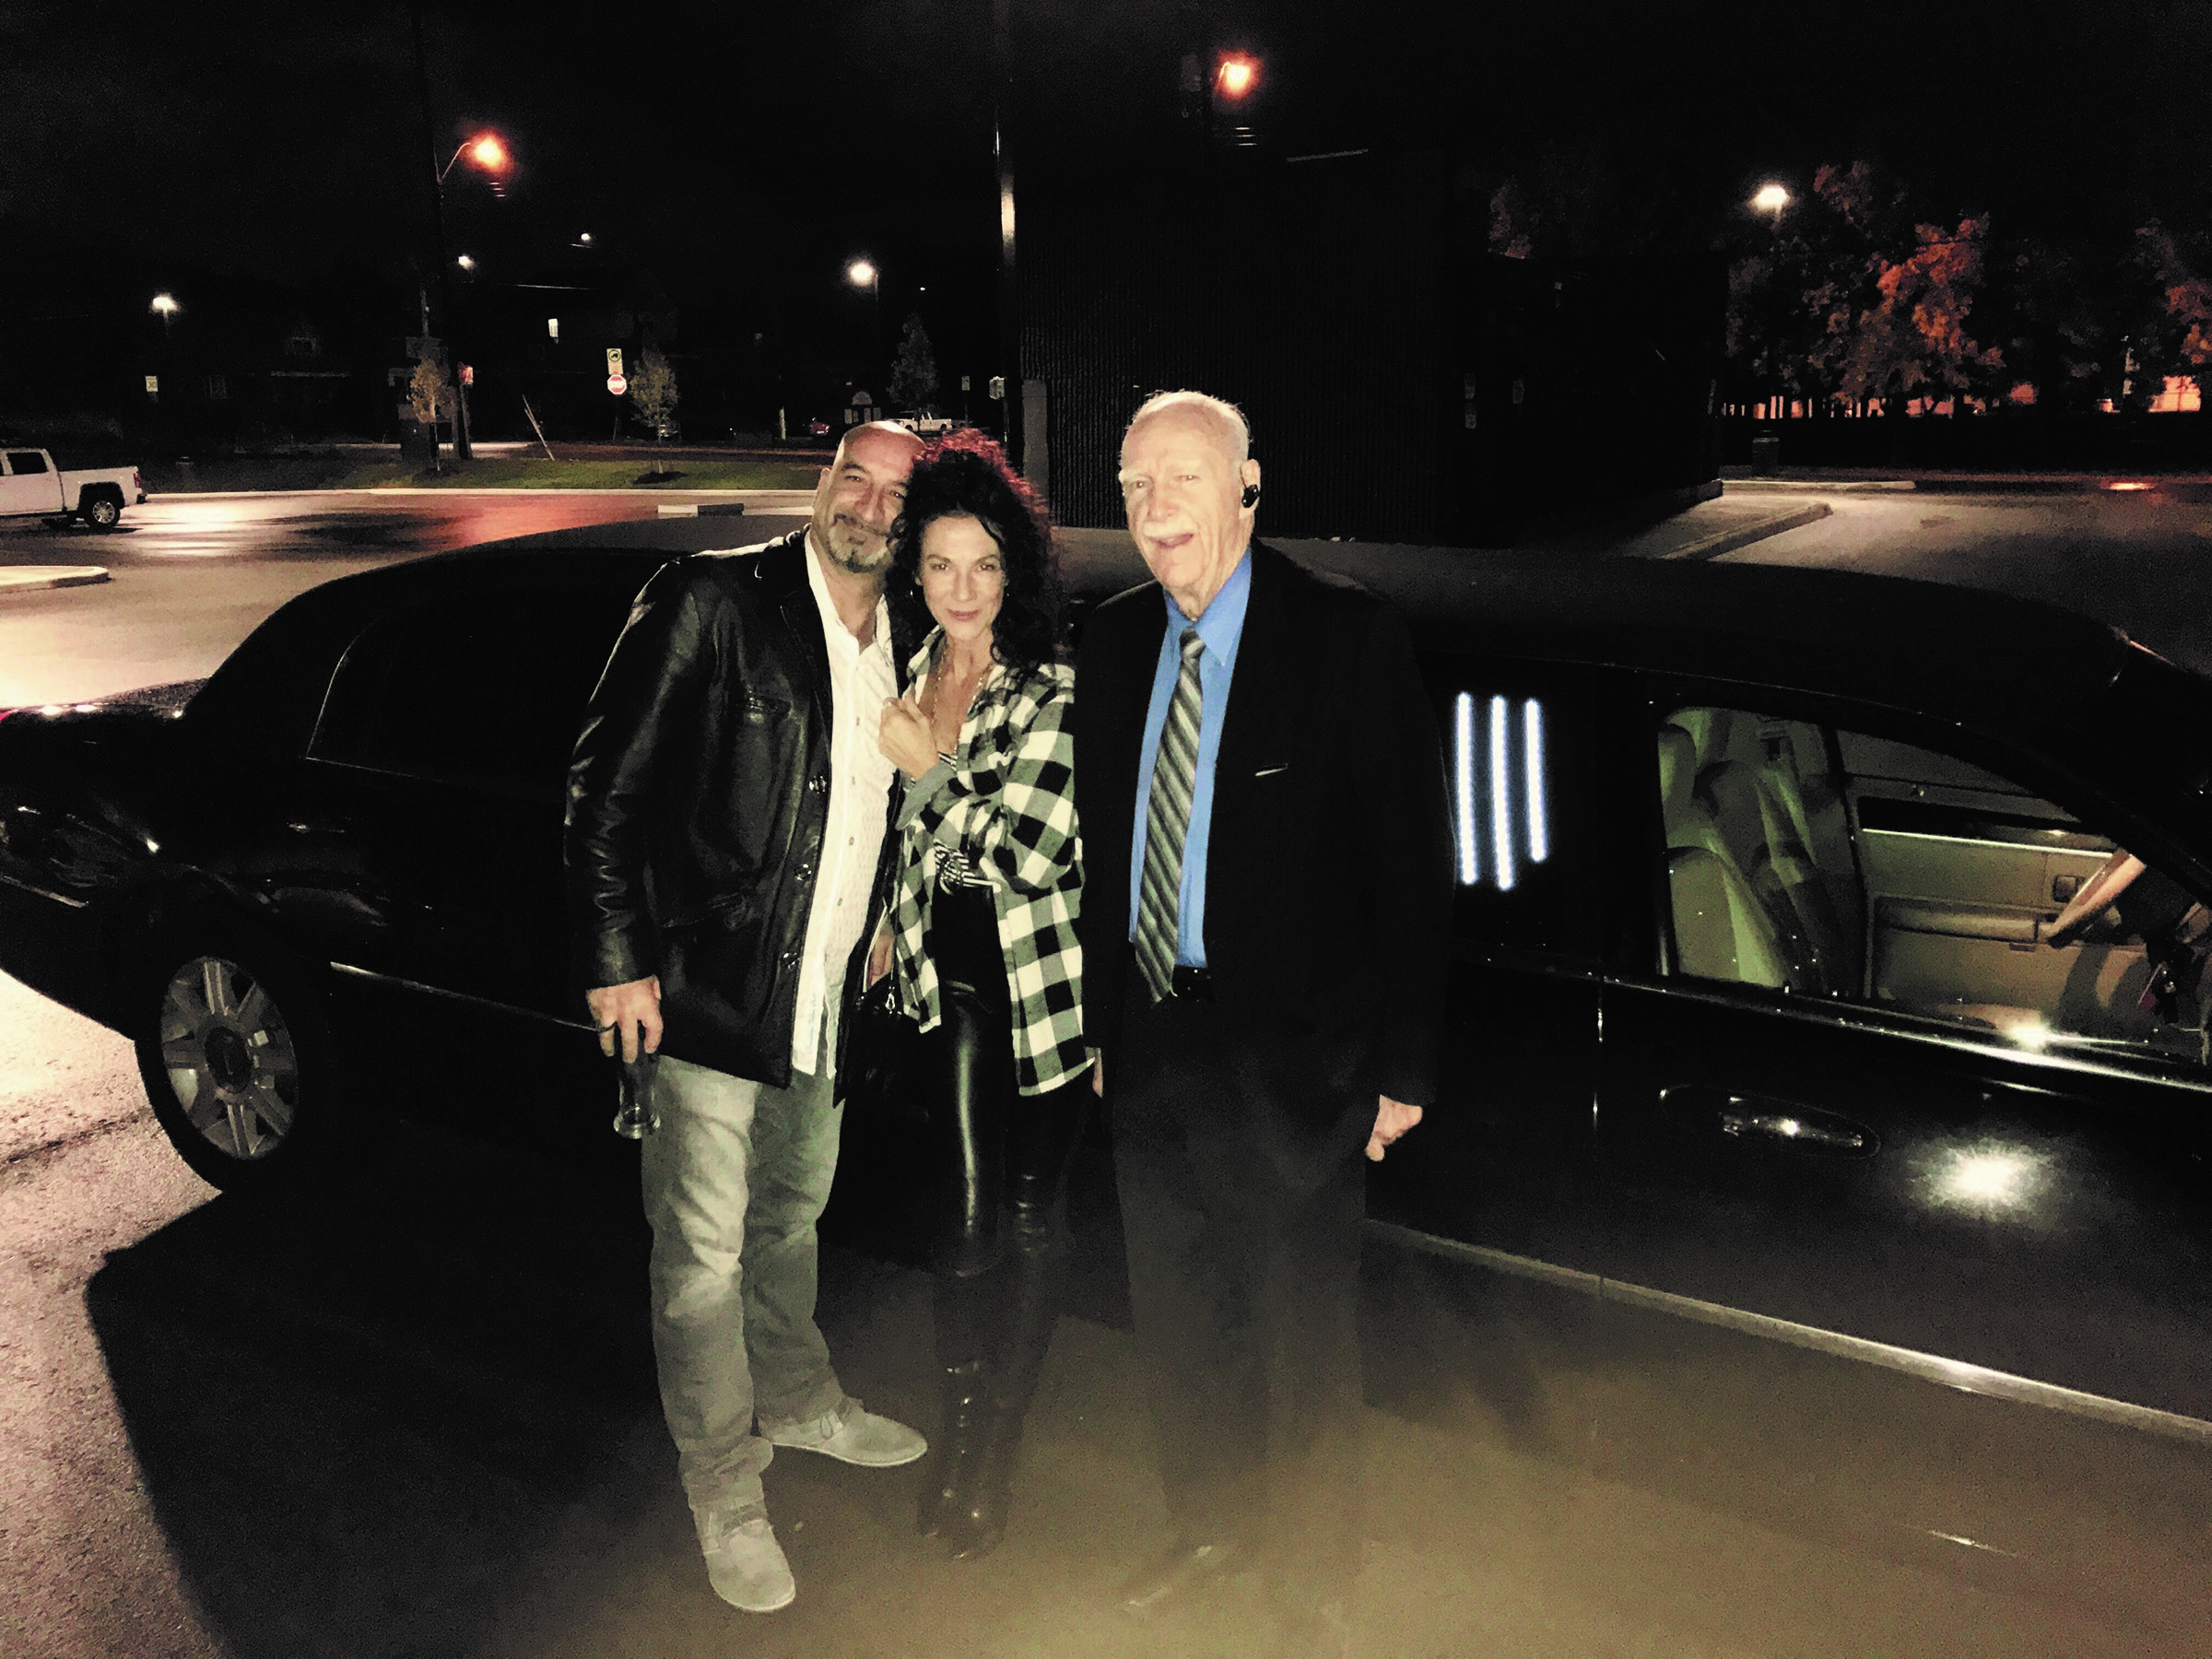 Marianne and Limo